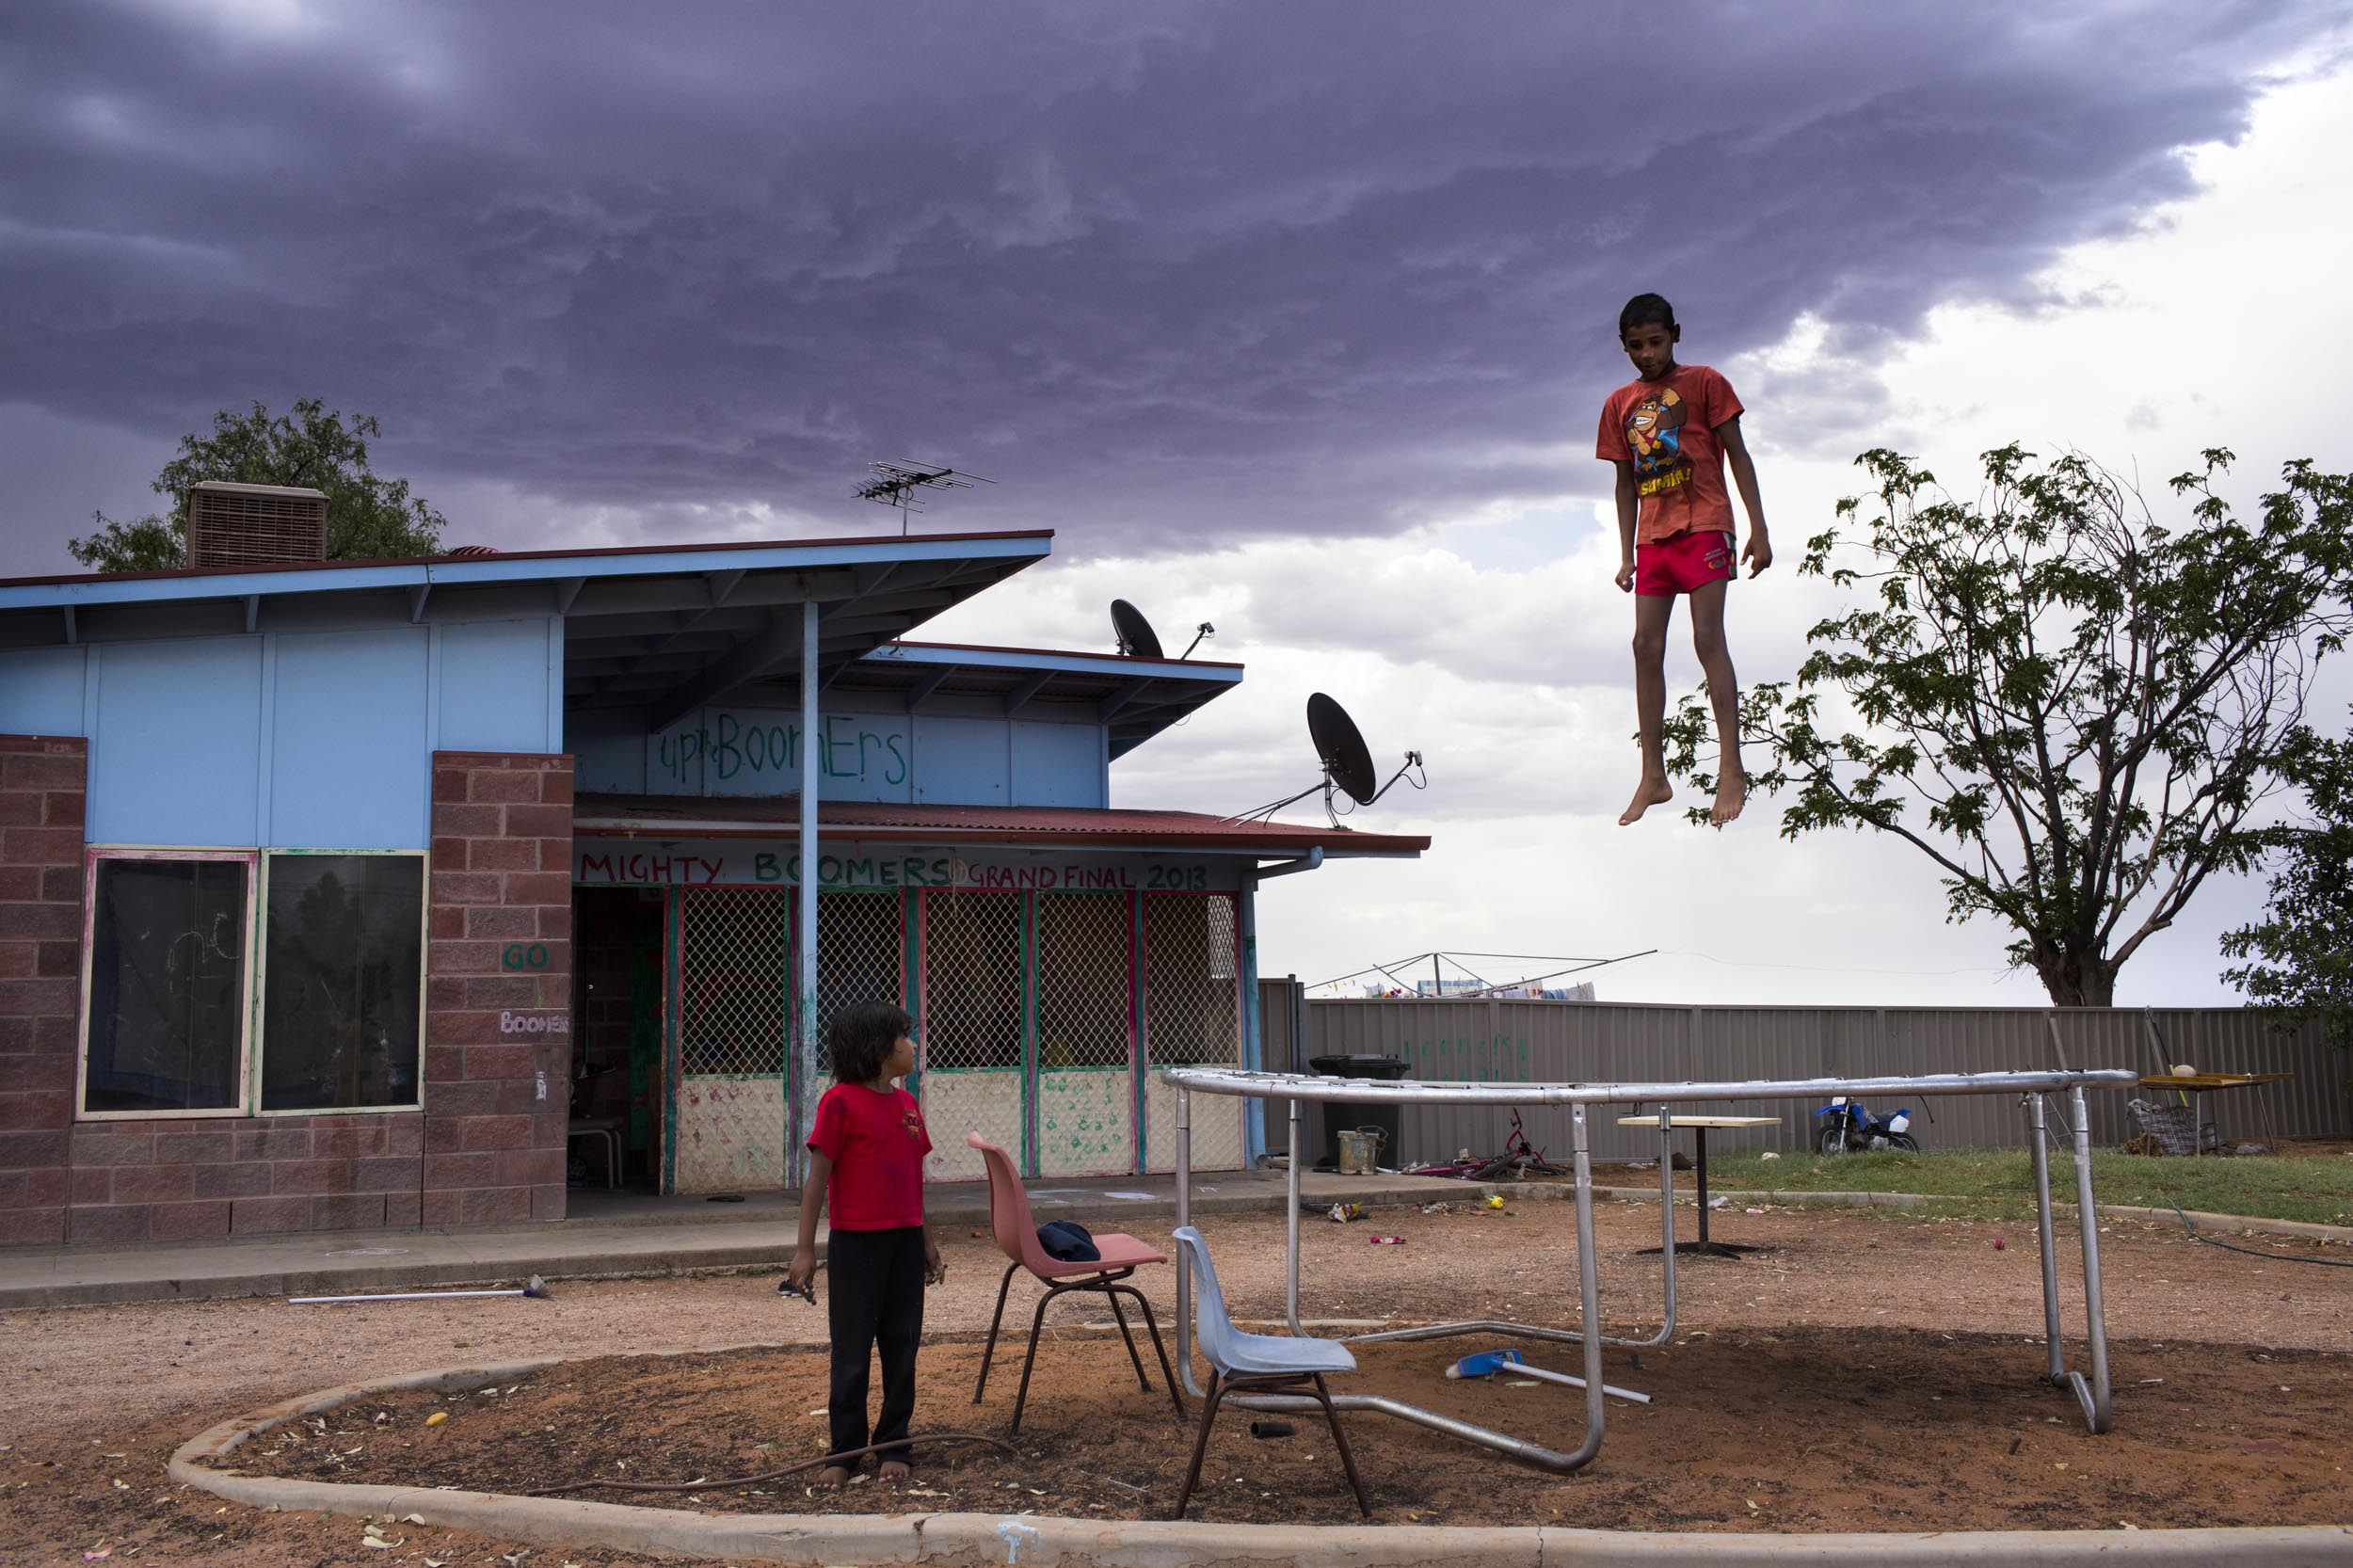 Storm clouds approach in Wilcannia, NSW.